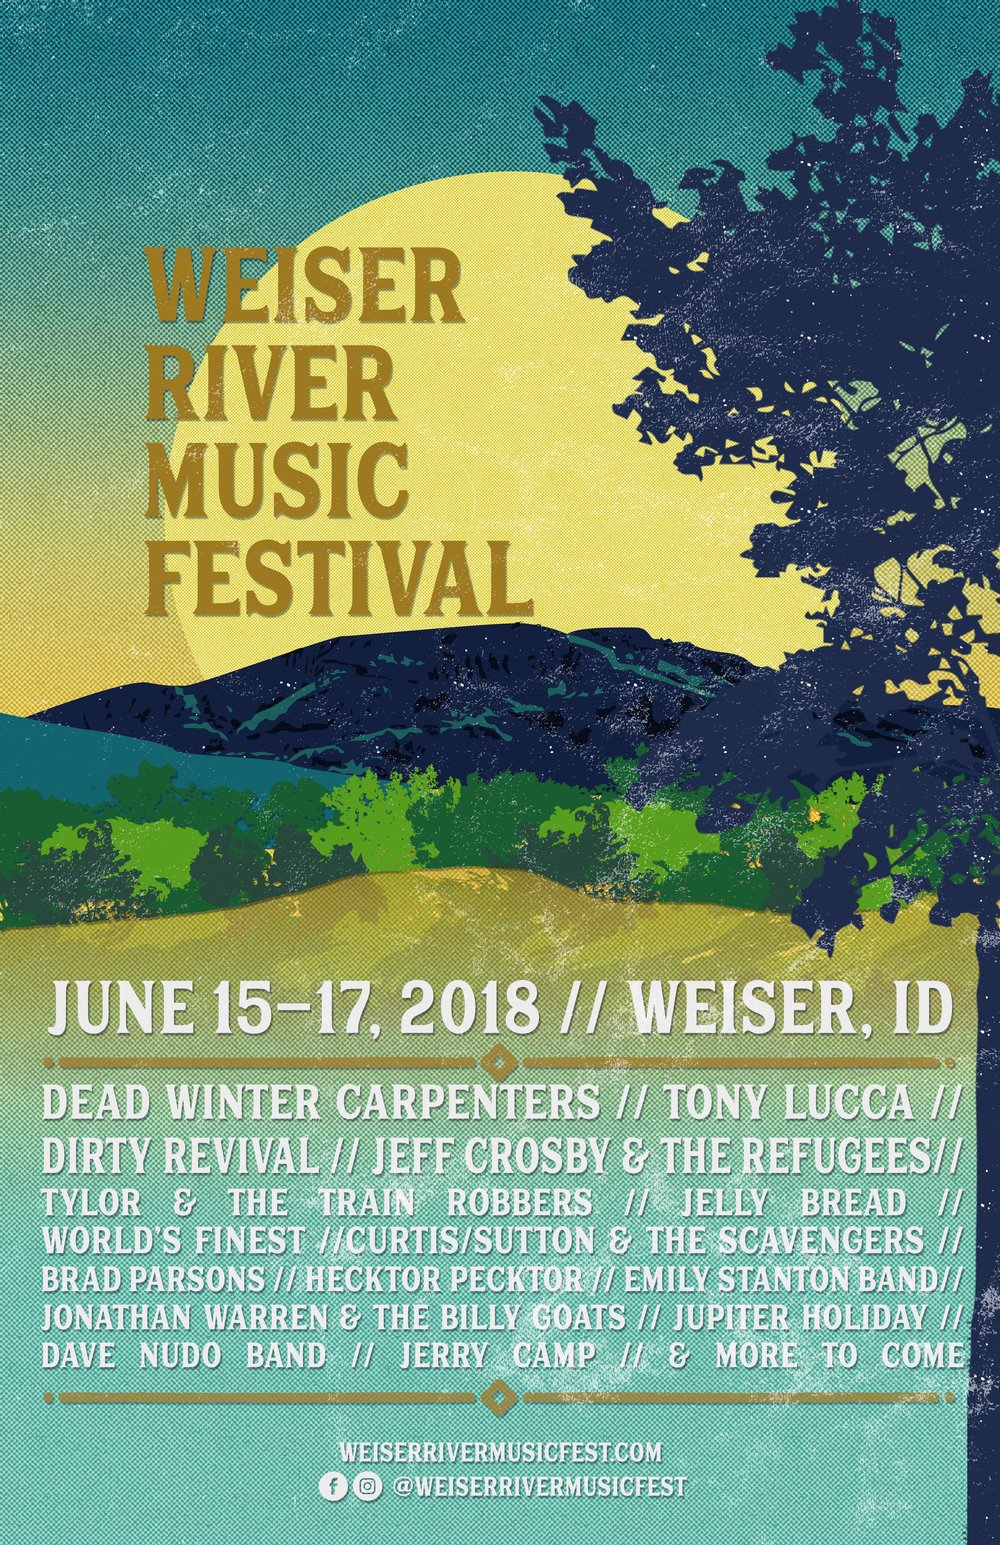 Poster design for the first-annual Weiser River Music Festival. I am the head of the marketing team for this event, and run the website and Instagram, as well.